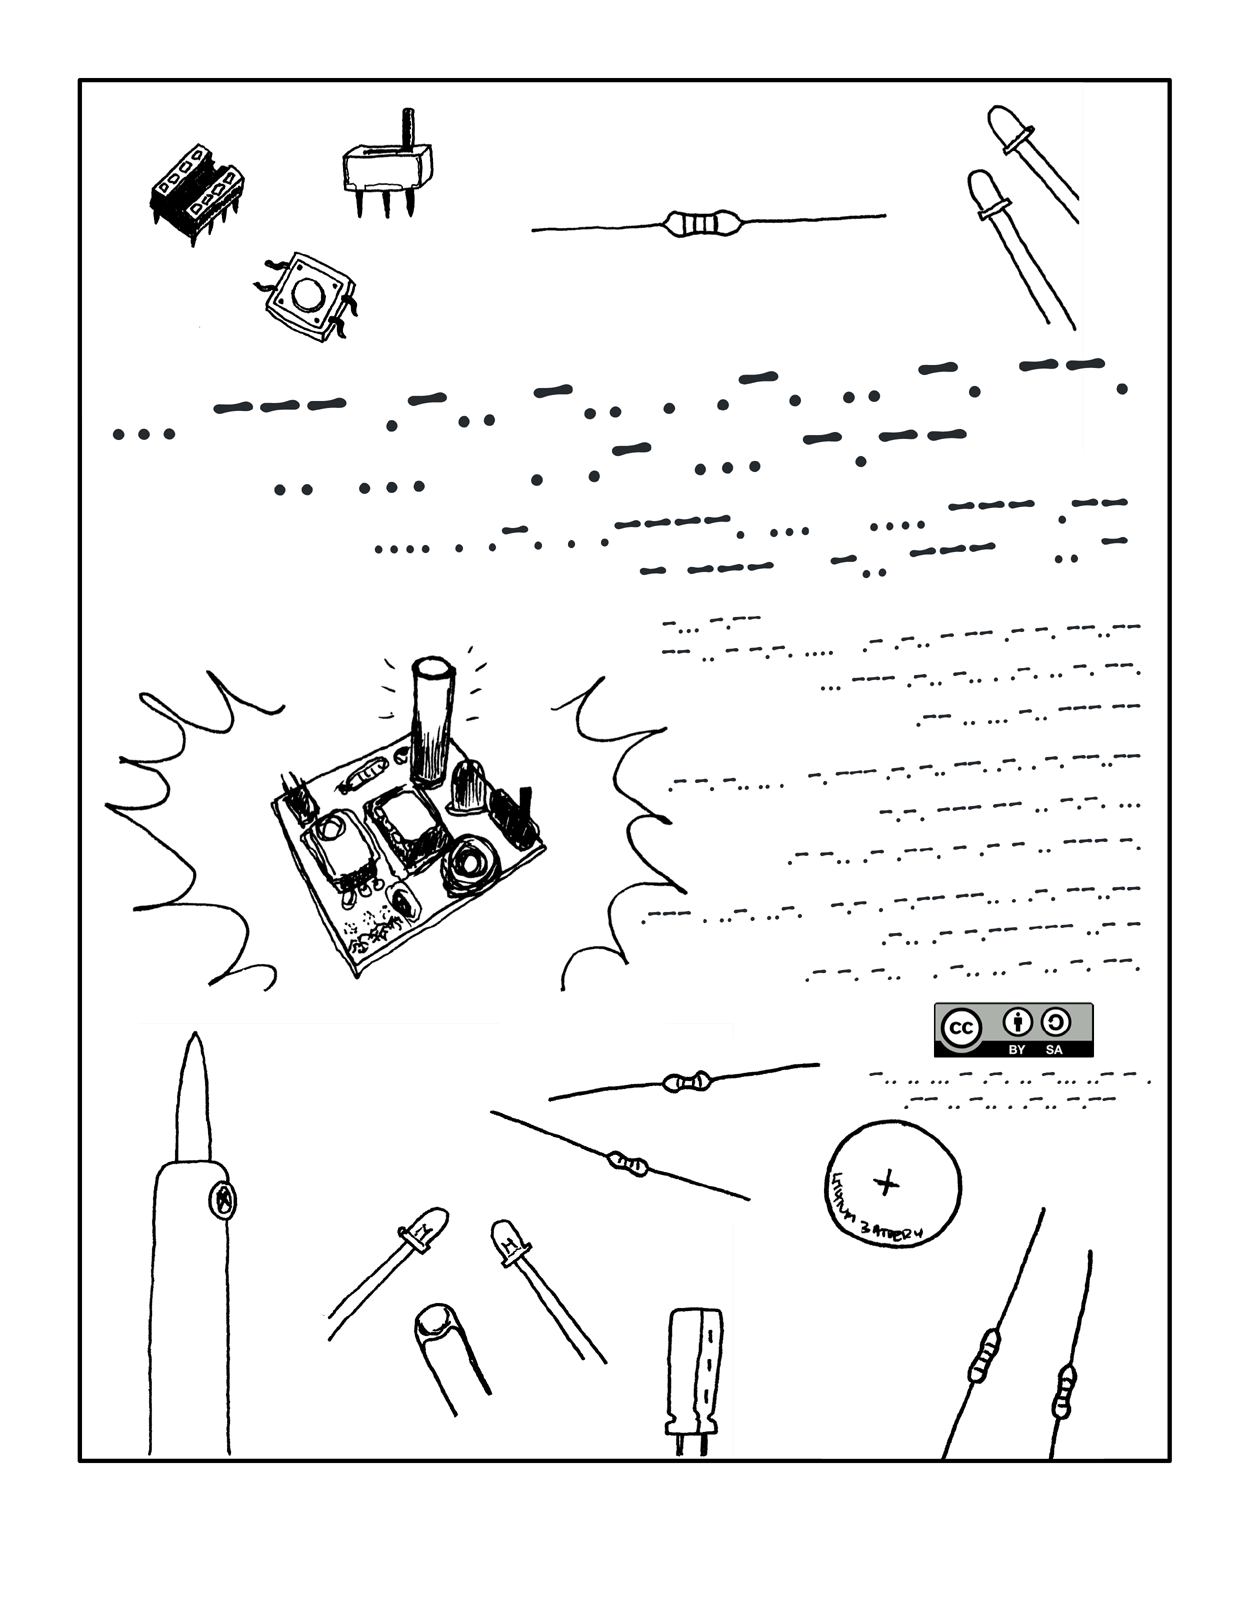 Cornfield Electronics Projects Free Circuits Please Feel To Copy This Comic And Spread It Around Or Translate Into Another Language Let Me Know Info At Cornfieldelectronics